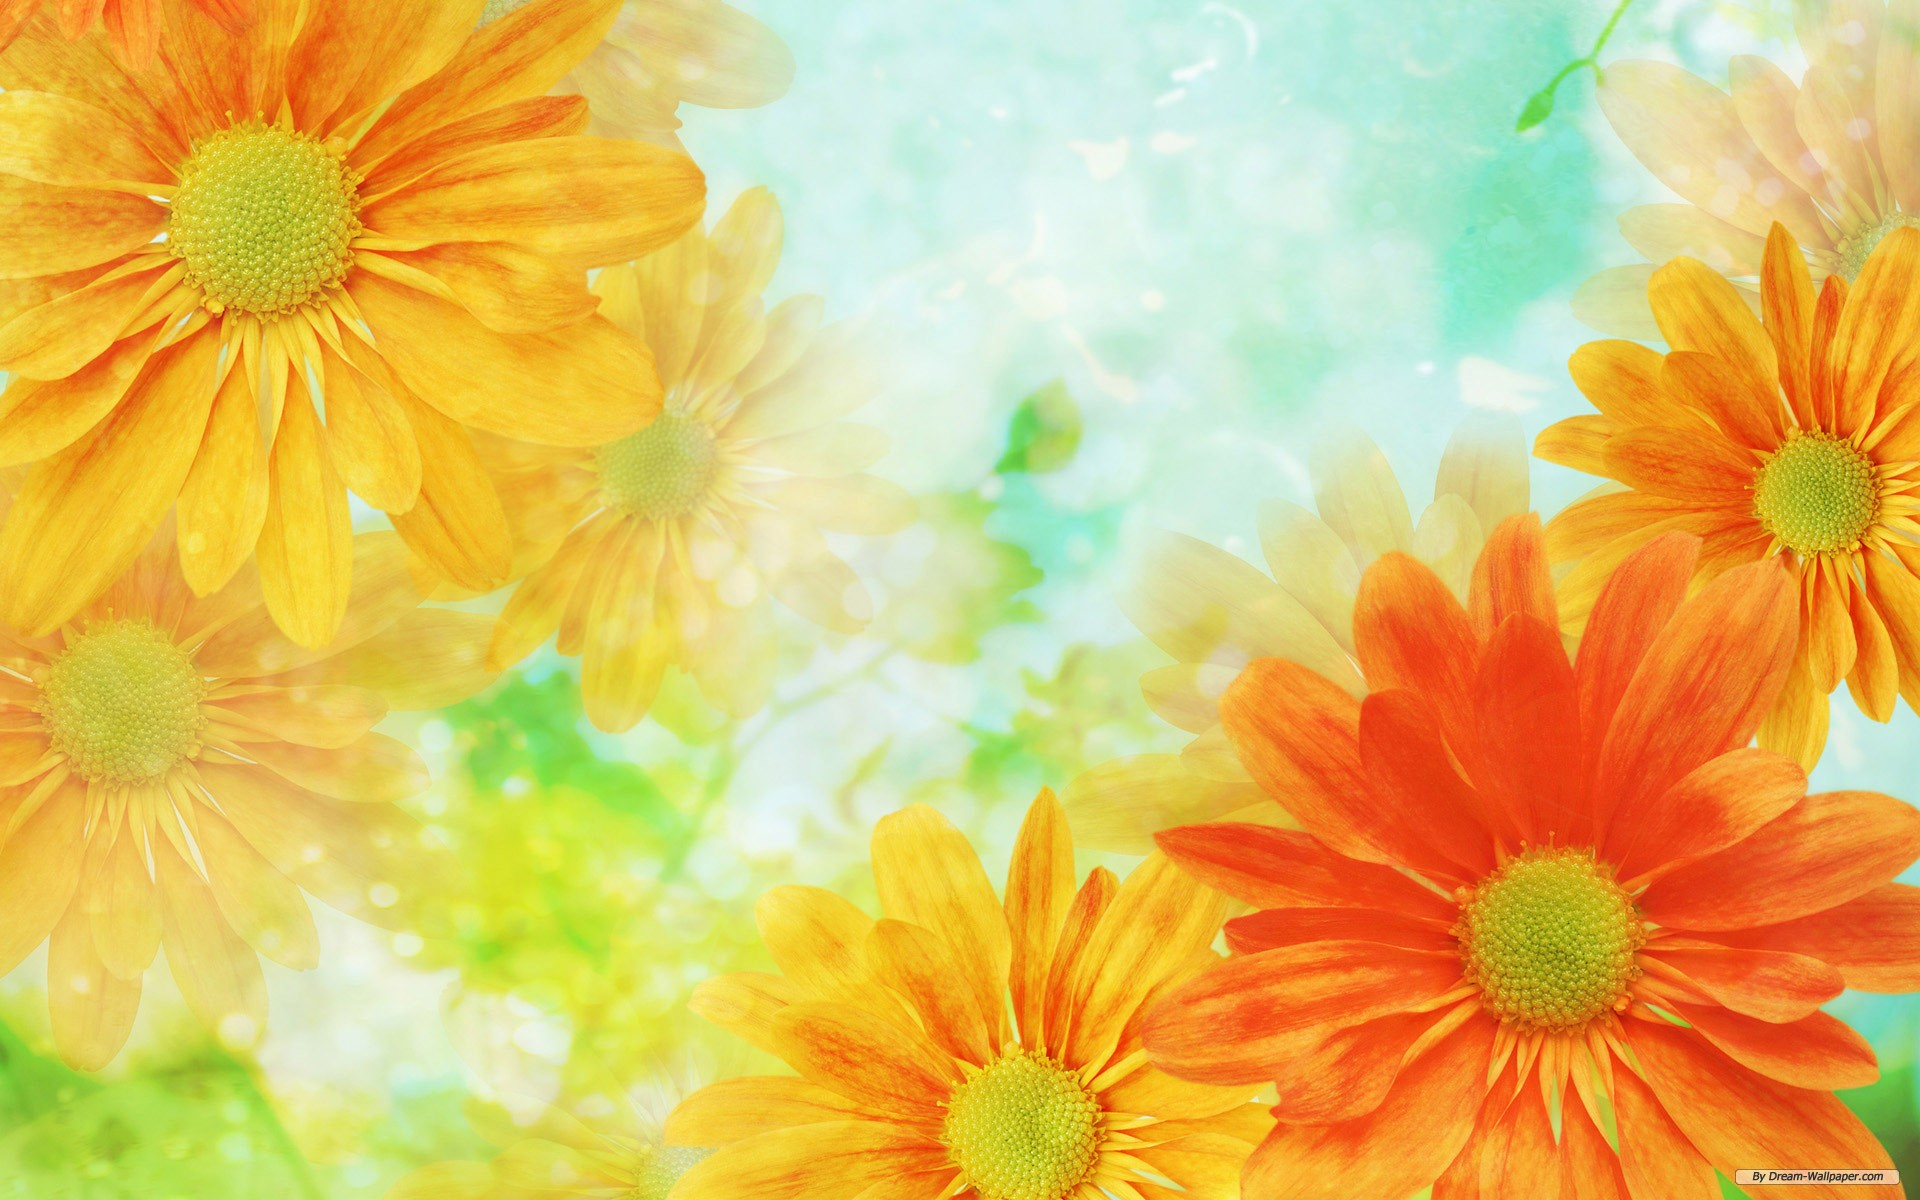 Wallpaper   Flower wallpaper   Cg Flowers wallpaper 1920x1200